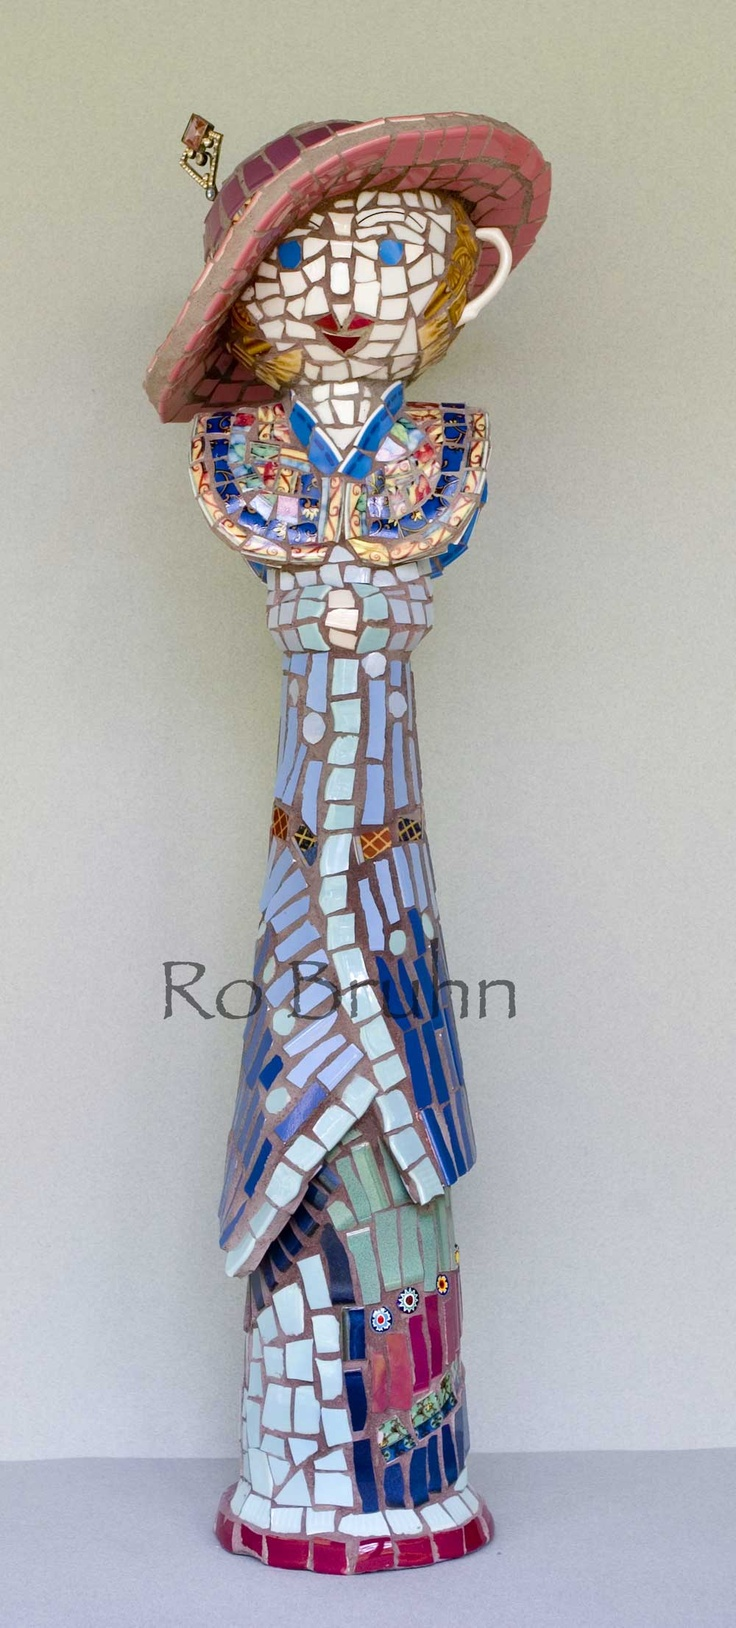 Ro Bruhn - another one of my mosaic ladies